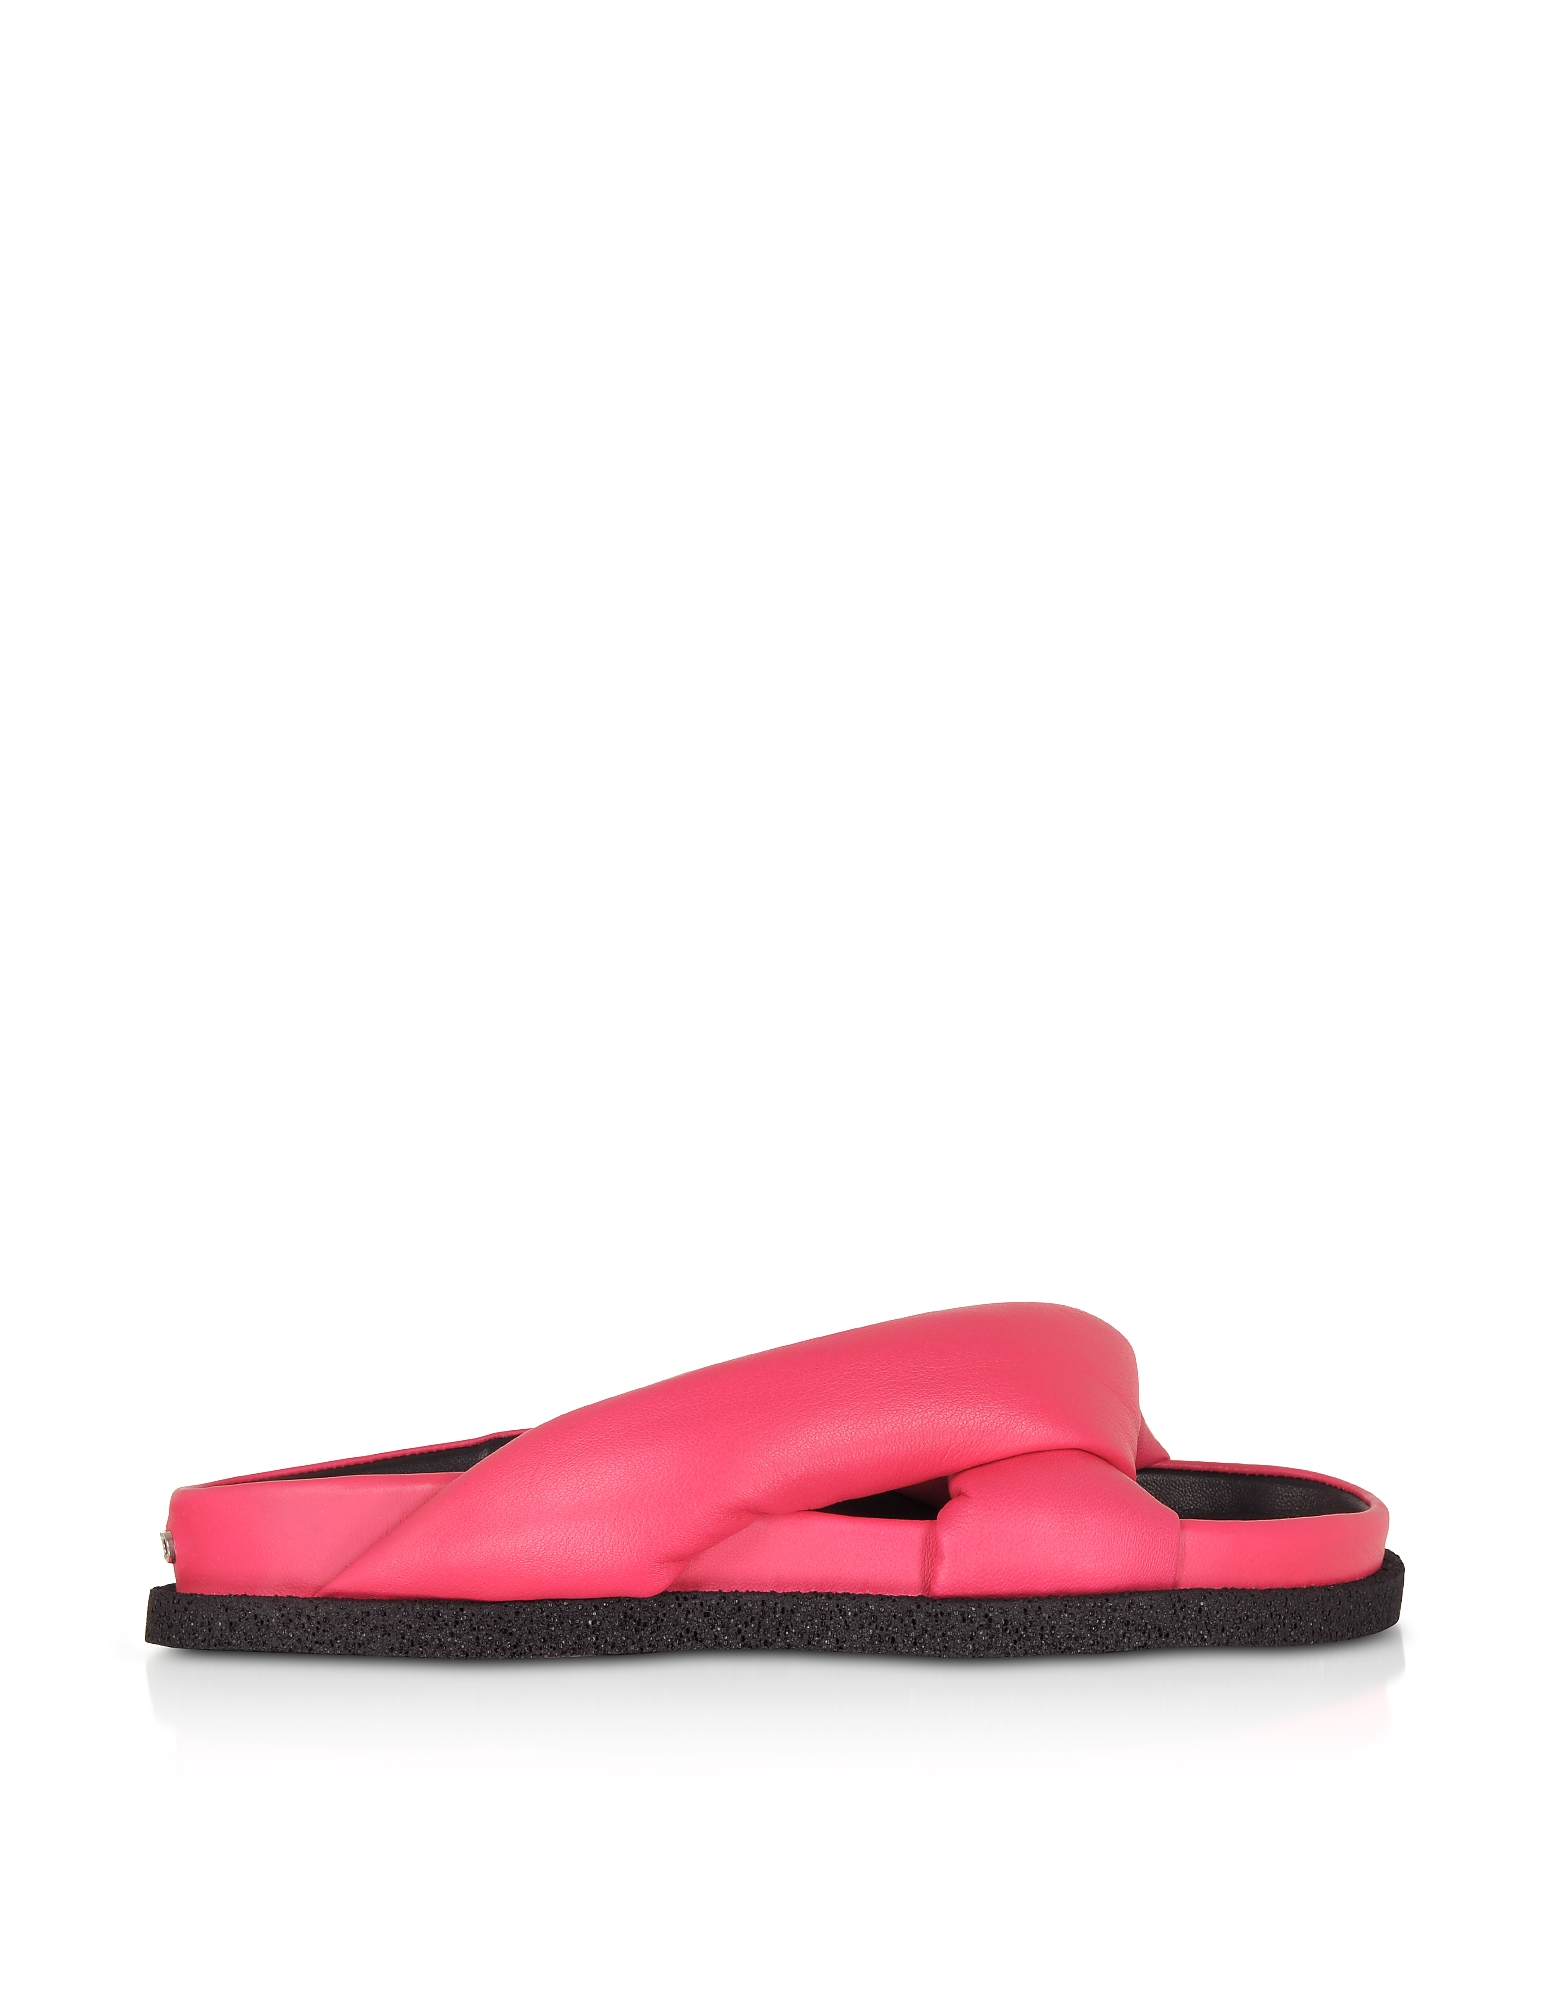 Kenzo Designer Shoes, Coral Nappa Leather Komfy Flat Mules